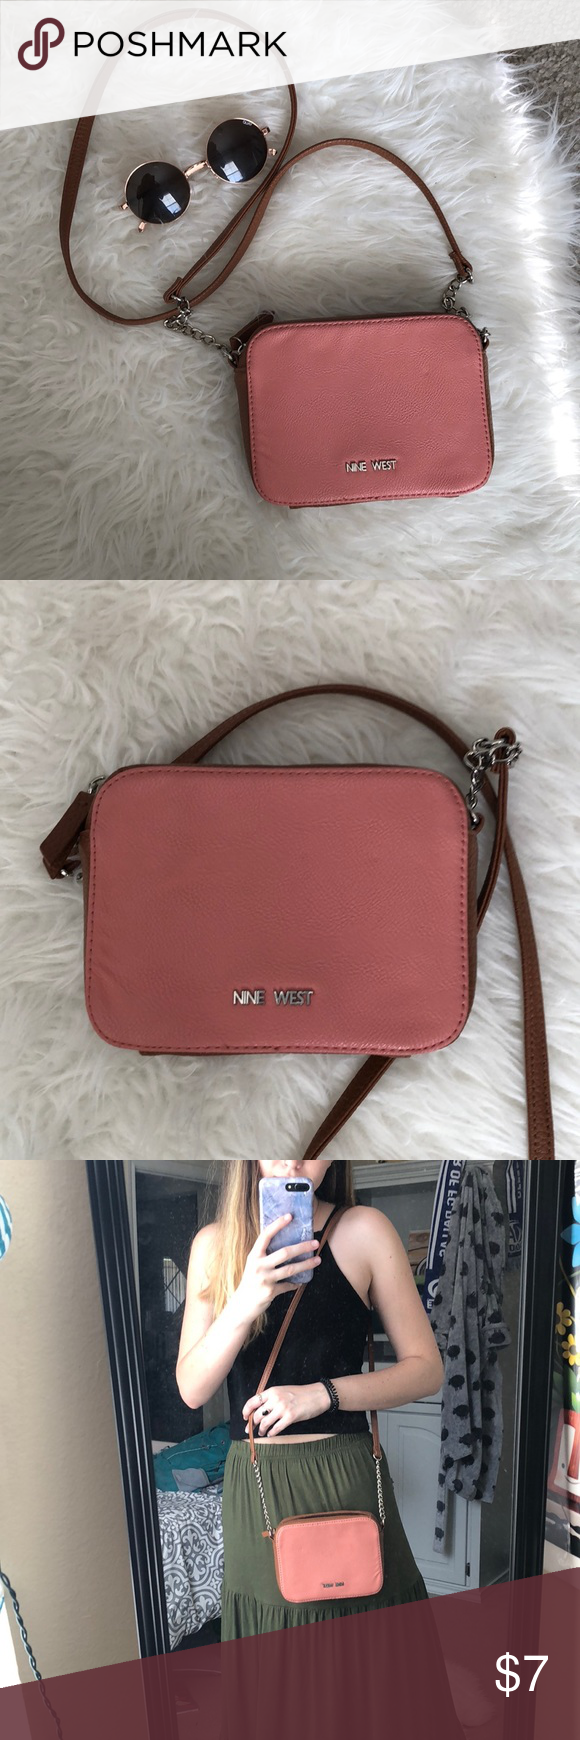 "a73207a621e 💕PINK NINE WEST PURSE💕 NINE WEST pink and brown 5"" by 2"" 🌞Cute small  purse to pair with any summer look🌞 Nine West Bags Mini Bags"